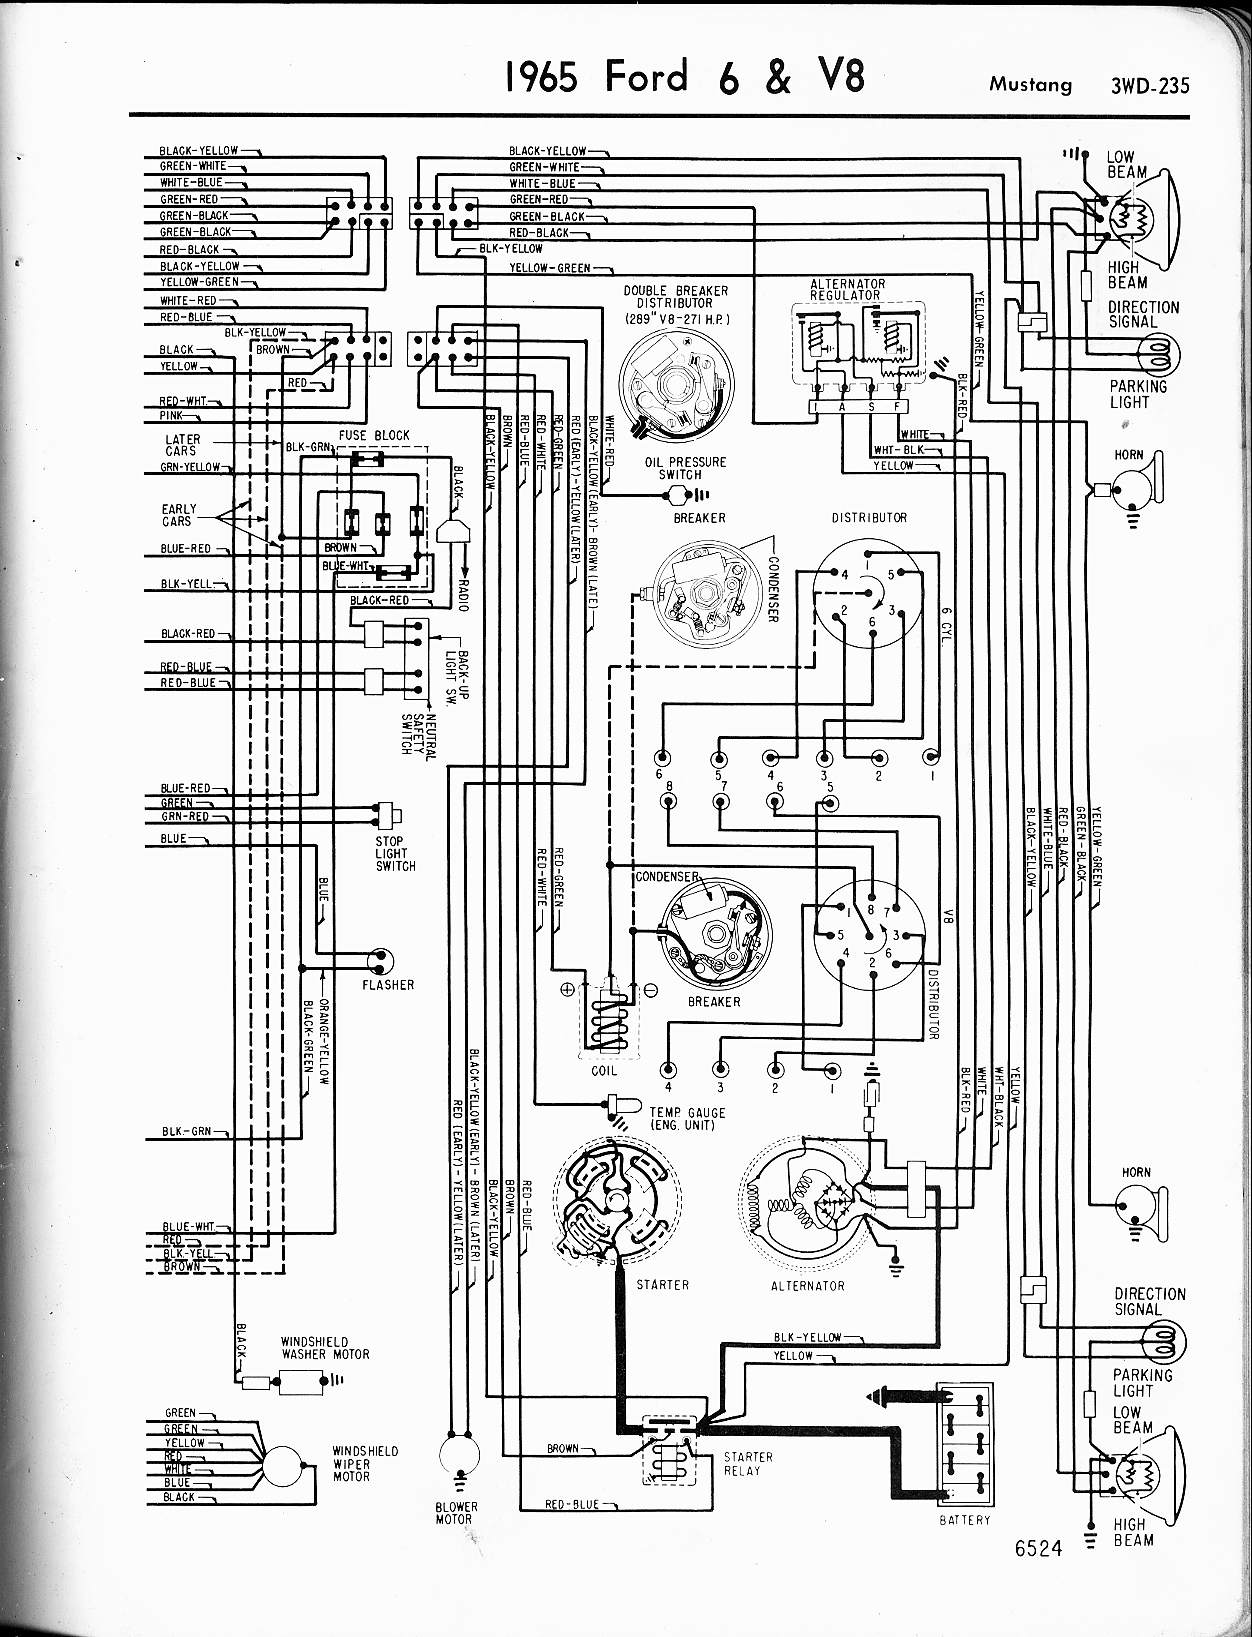 MWire5765 235 1967 thunderbird turn signal diagram wiring schematic on 1967 Cub Cadet 100 at bayanpartner.co